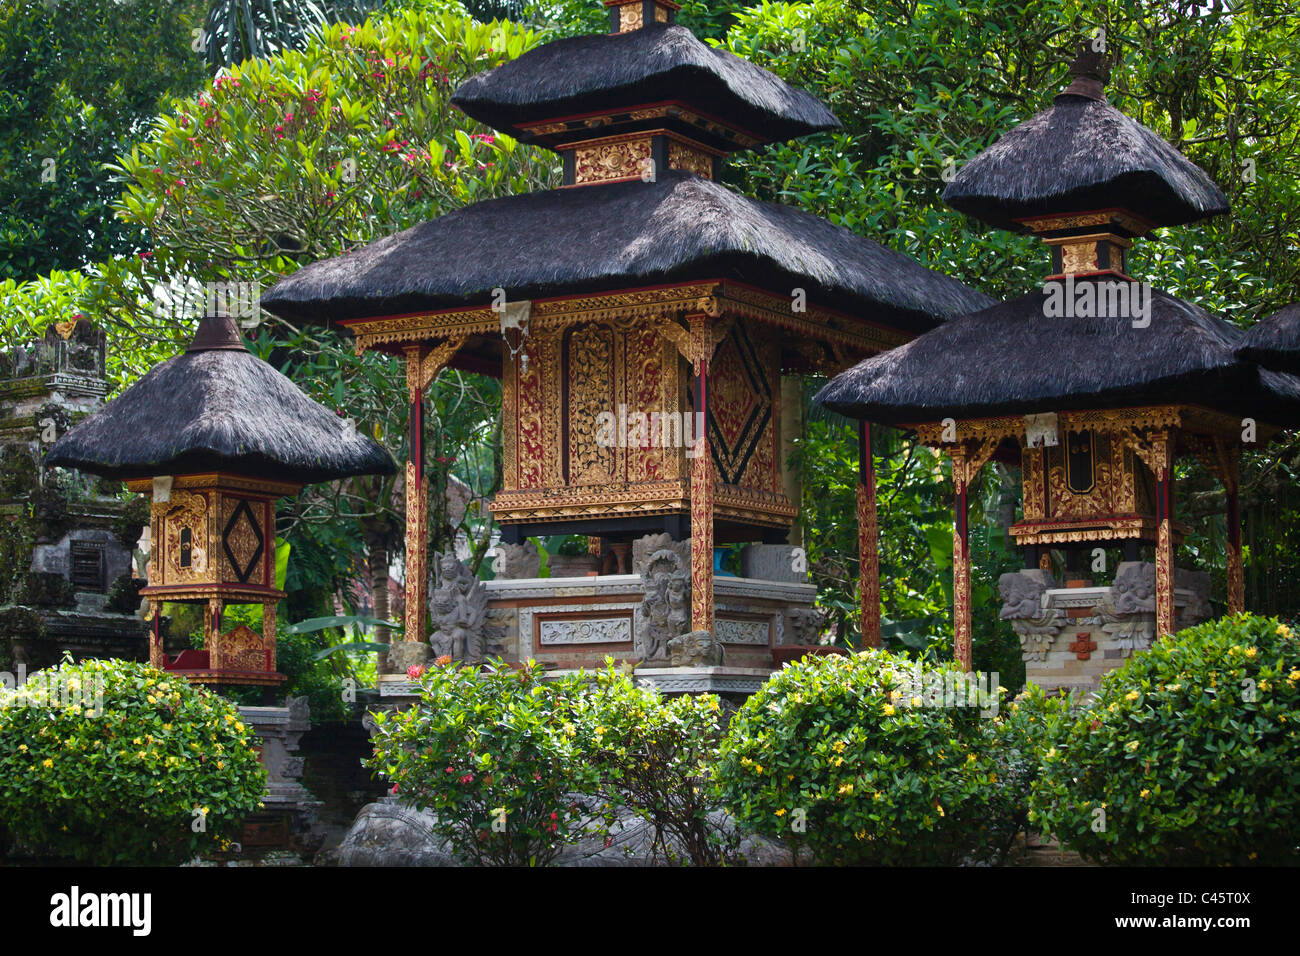 Three Hindu temples to Shiva, Brahma and Vishnu at PURA TAMAN SARASWATI - UBUD, BALI, INDONESIA - Stock Image